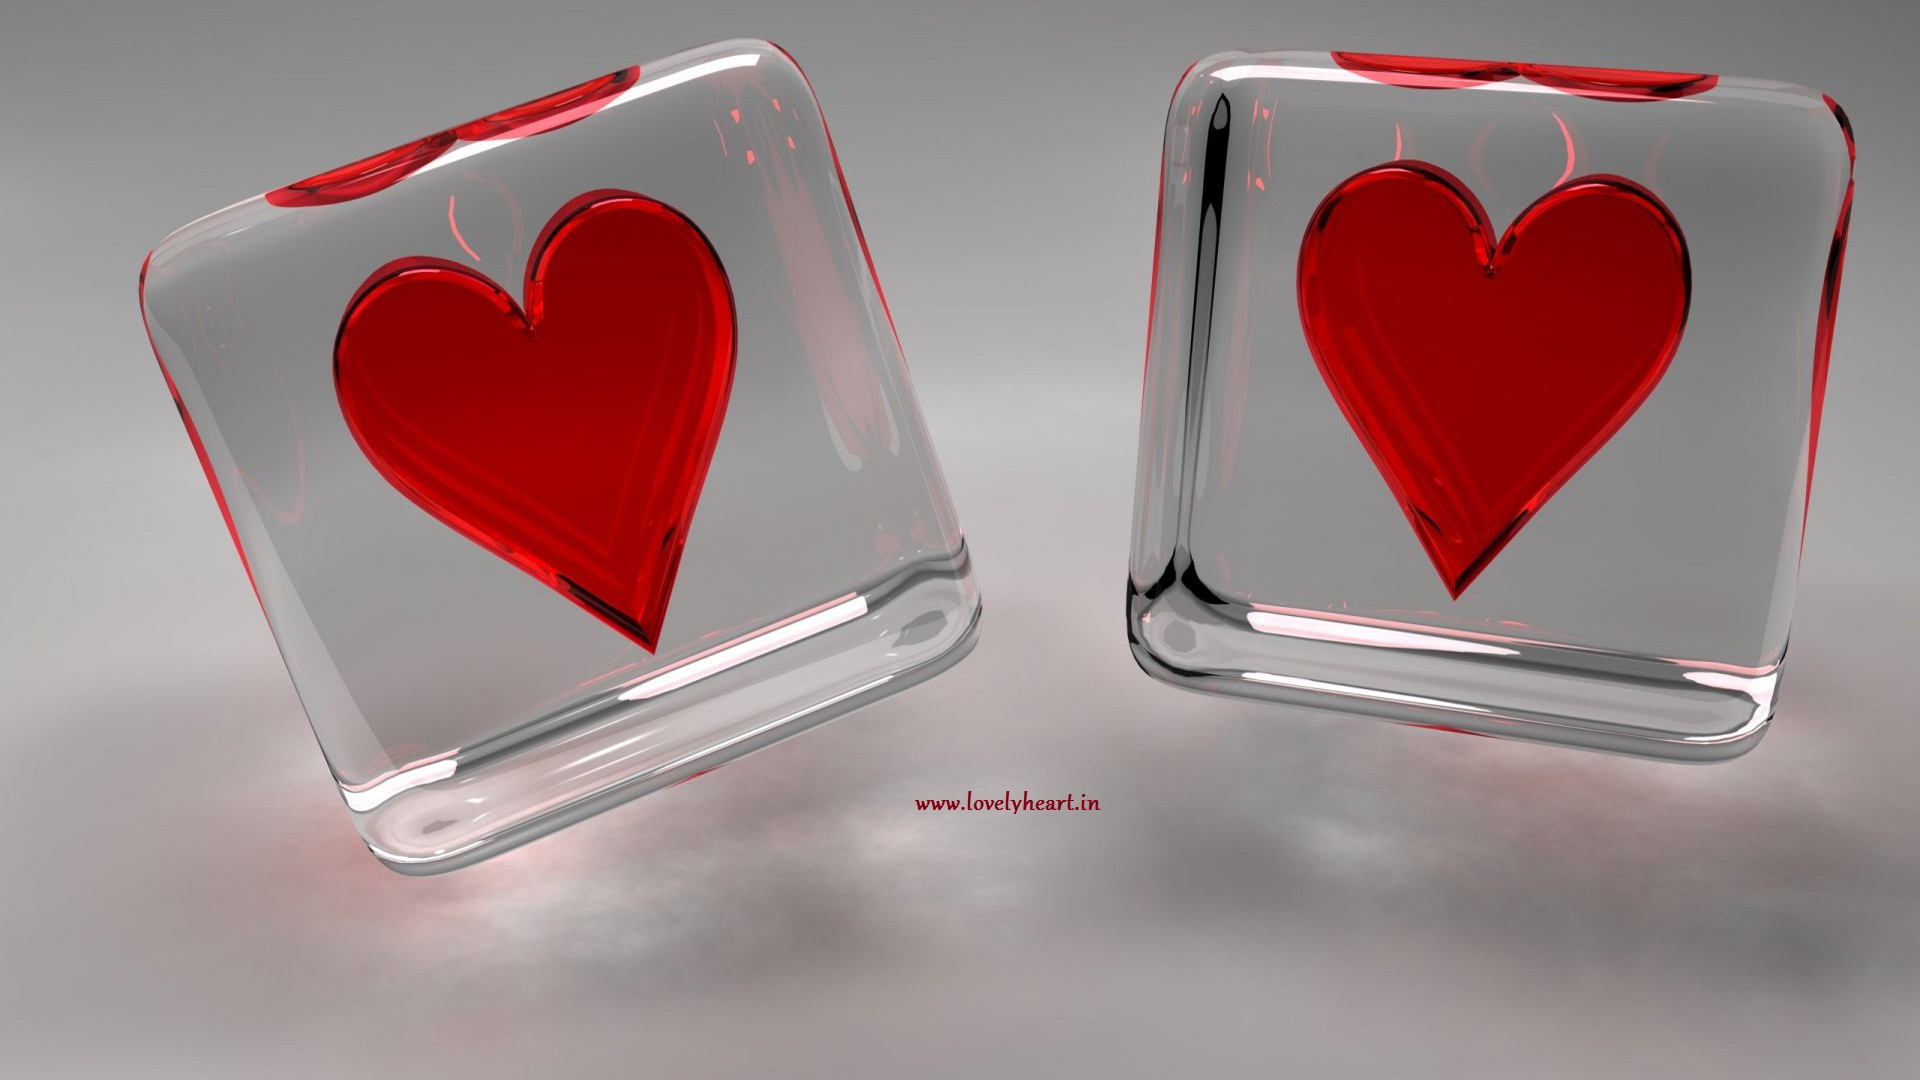 Love Beautiful Cute Heart ImagesWallpapers Quotes for BF GF www 1920x1080